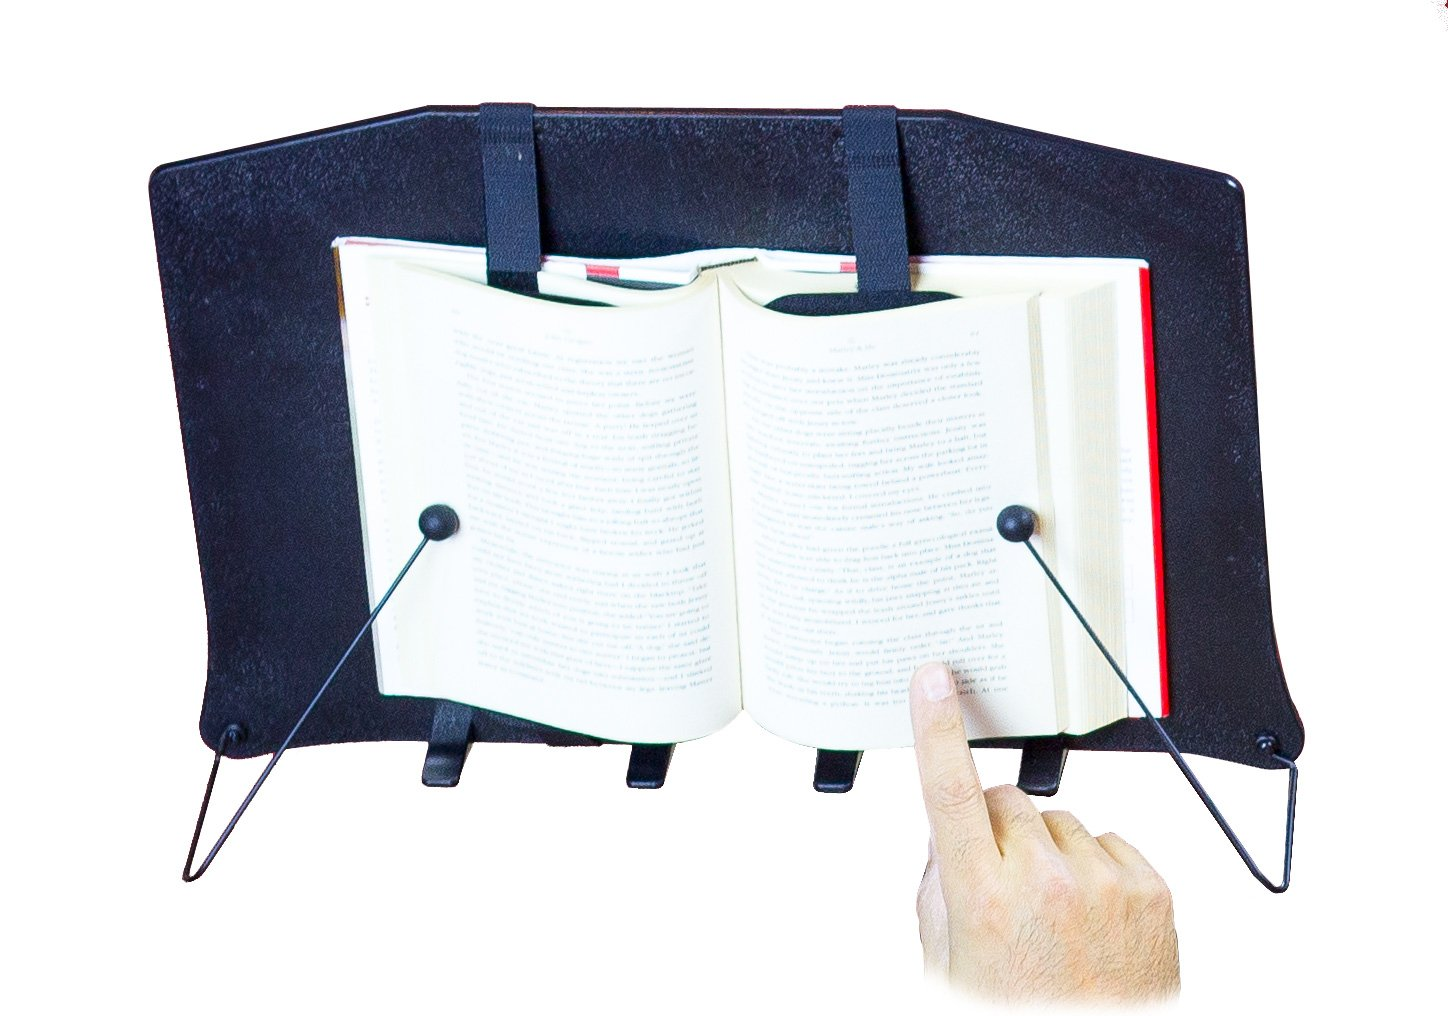 LEVO G2 Book Platform Kit Bookholder Company 33701